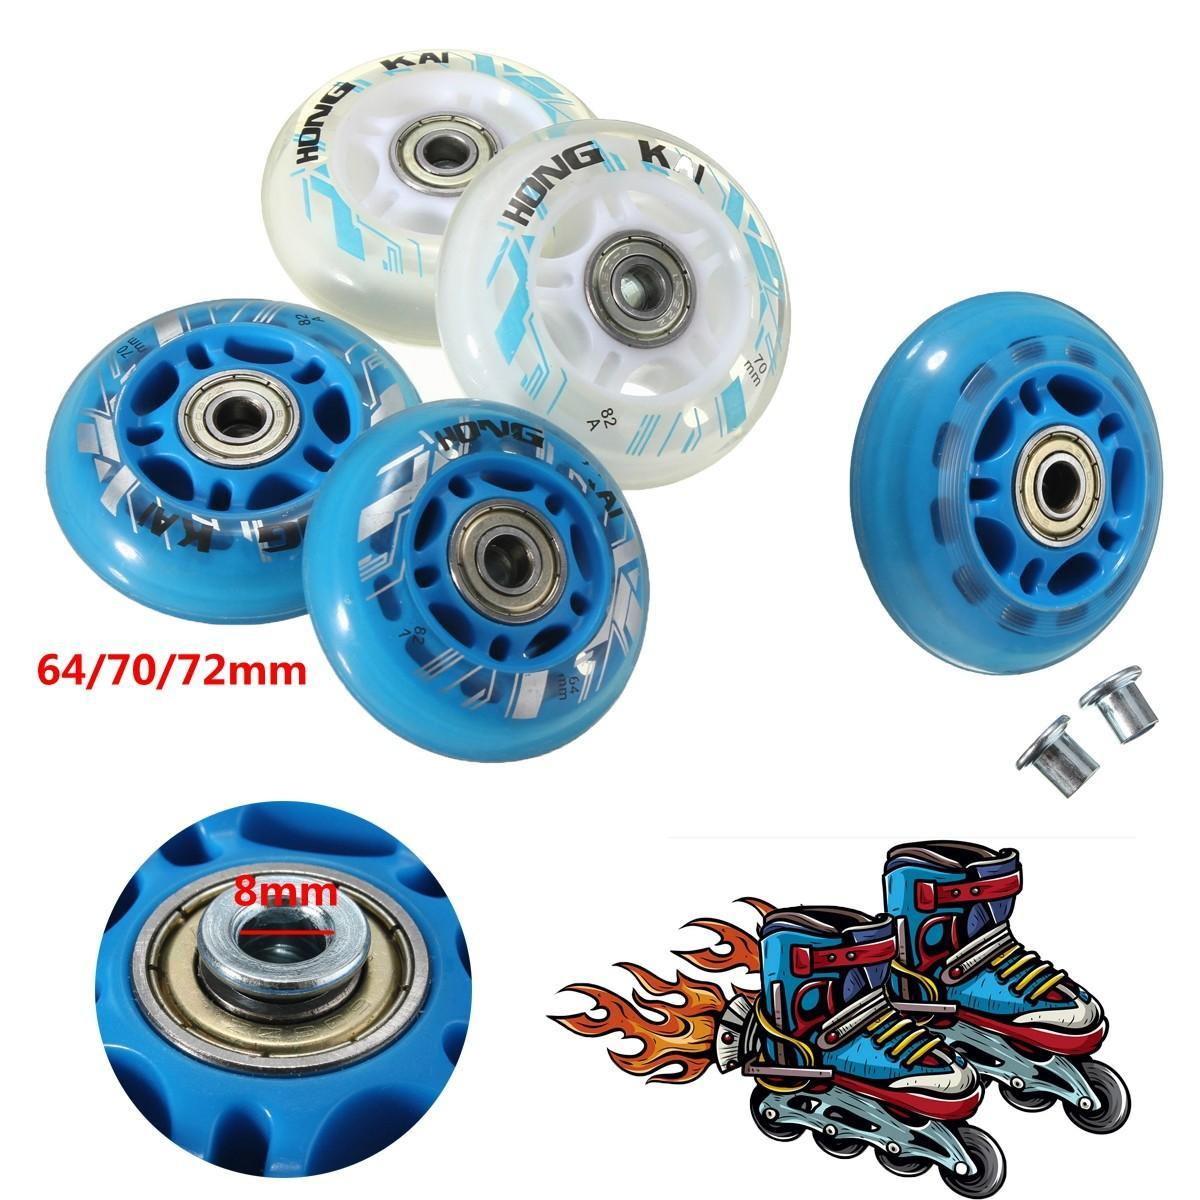 1Pcs 82A Sliding Inline Skates Wheels 64/70/72Mm Roller Blade Replacement Skating Wheels With Bearing Dia 8Mm oqWqw